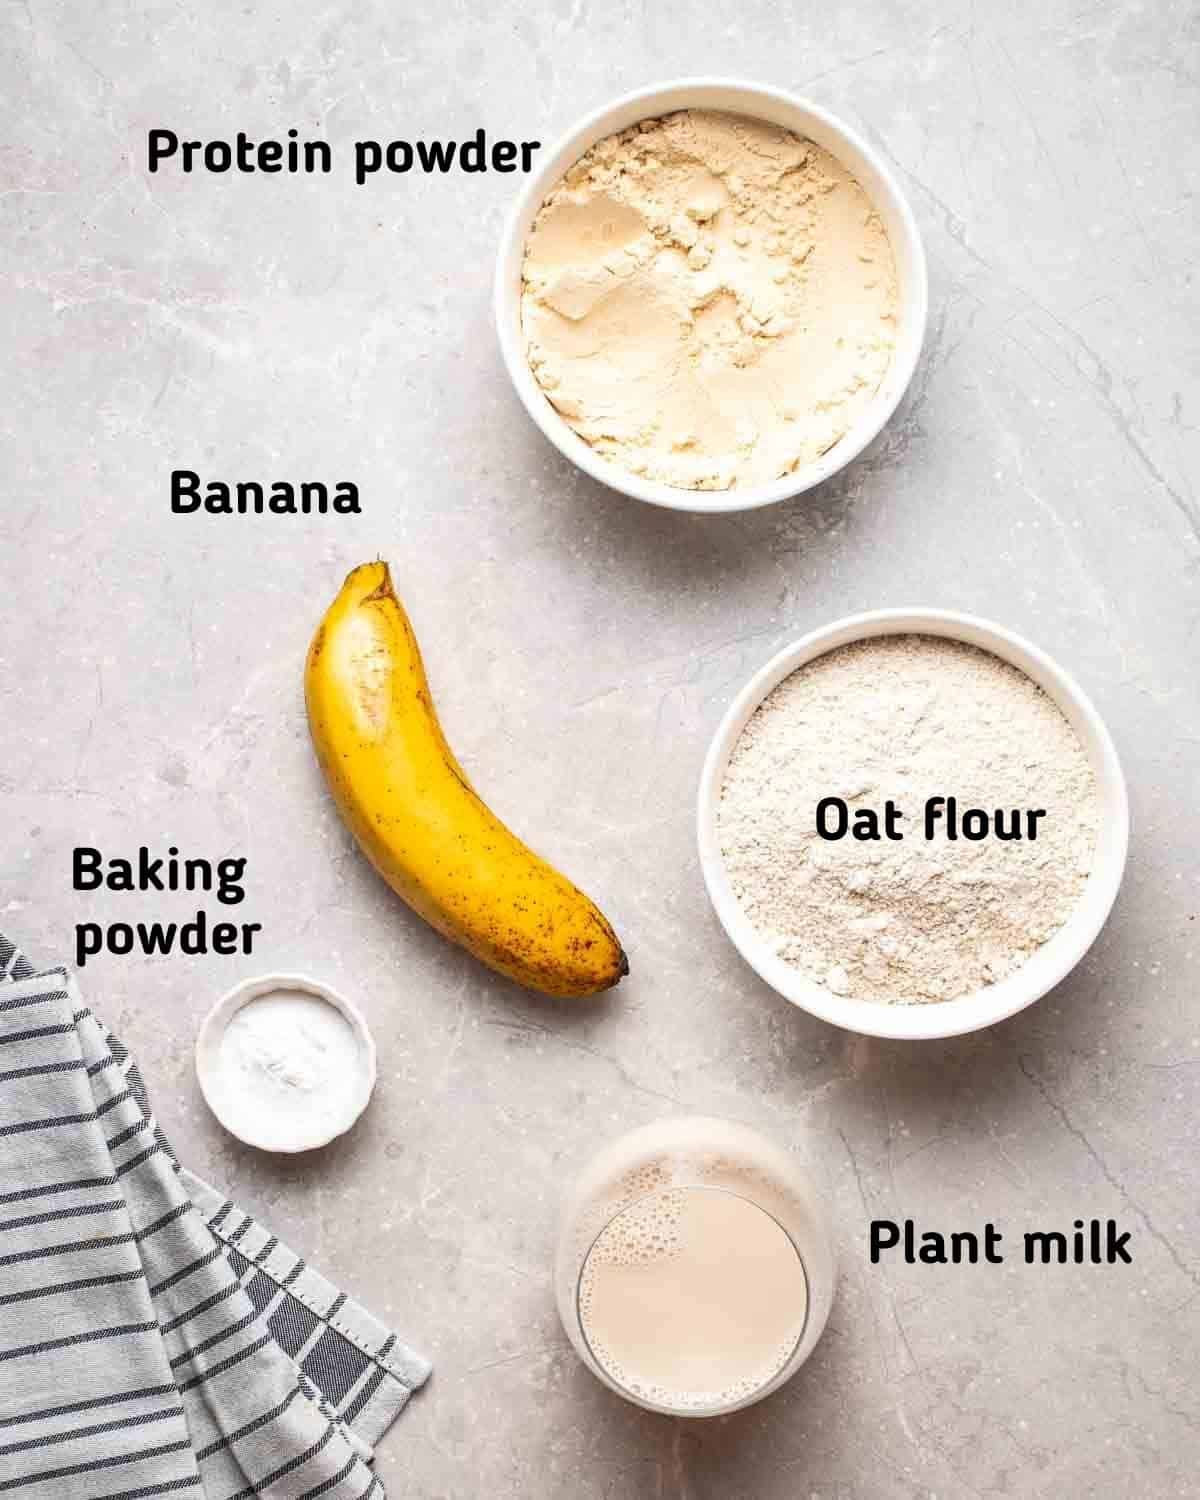 Showing ingredients needed to make waffles like banana, oat flour, baking powder, milk and protein powder.